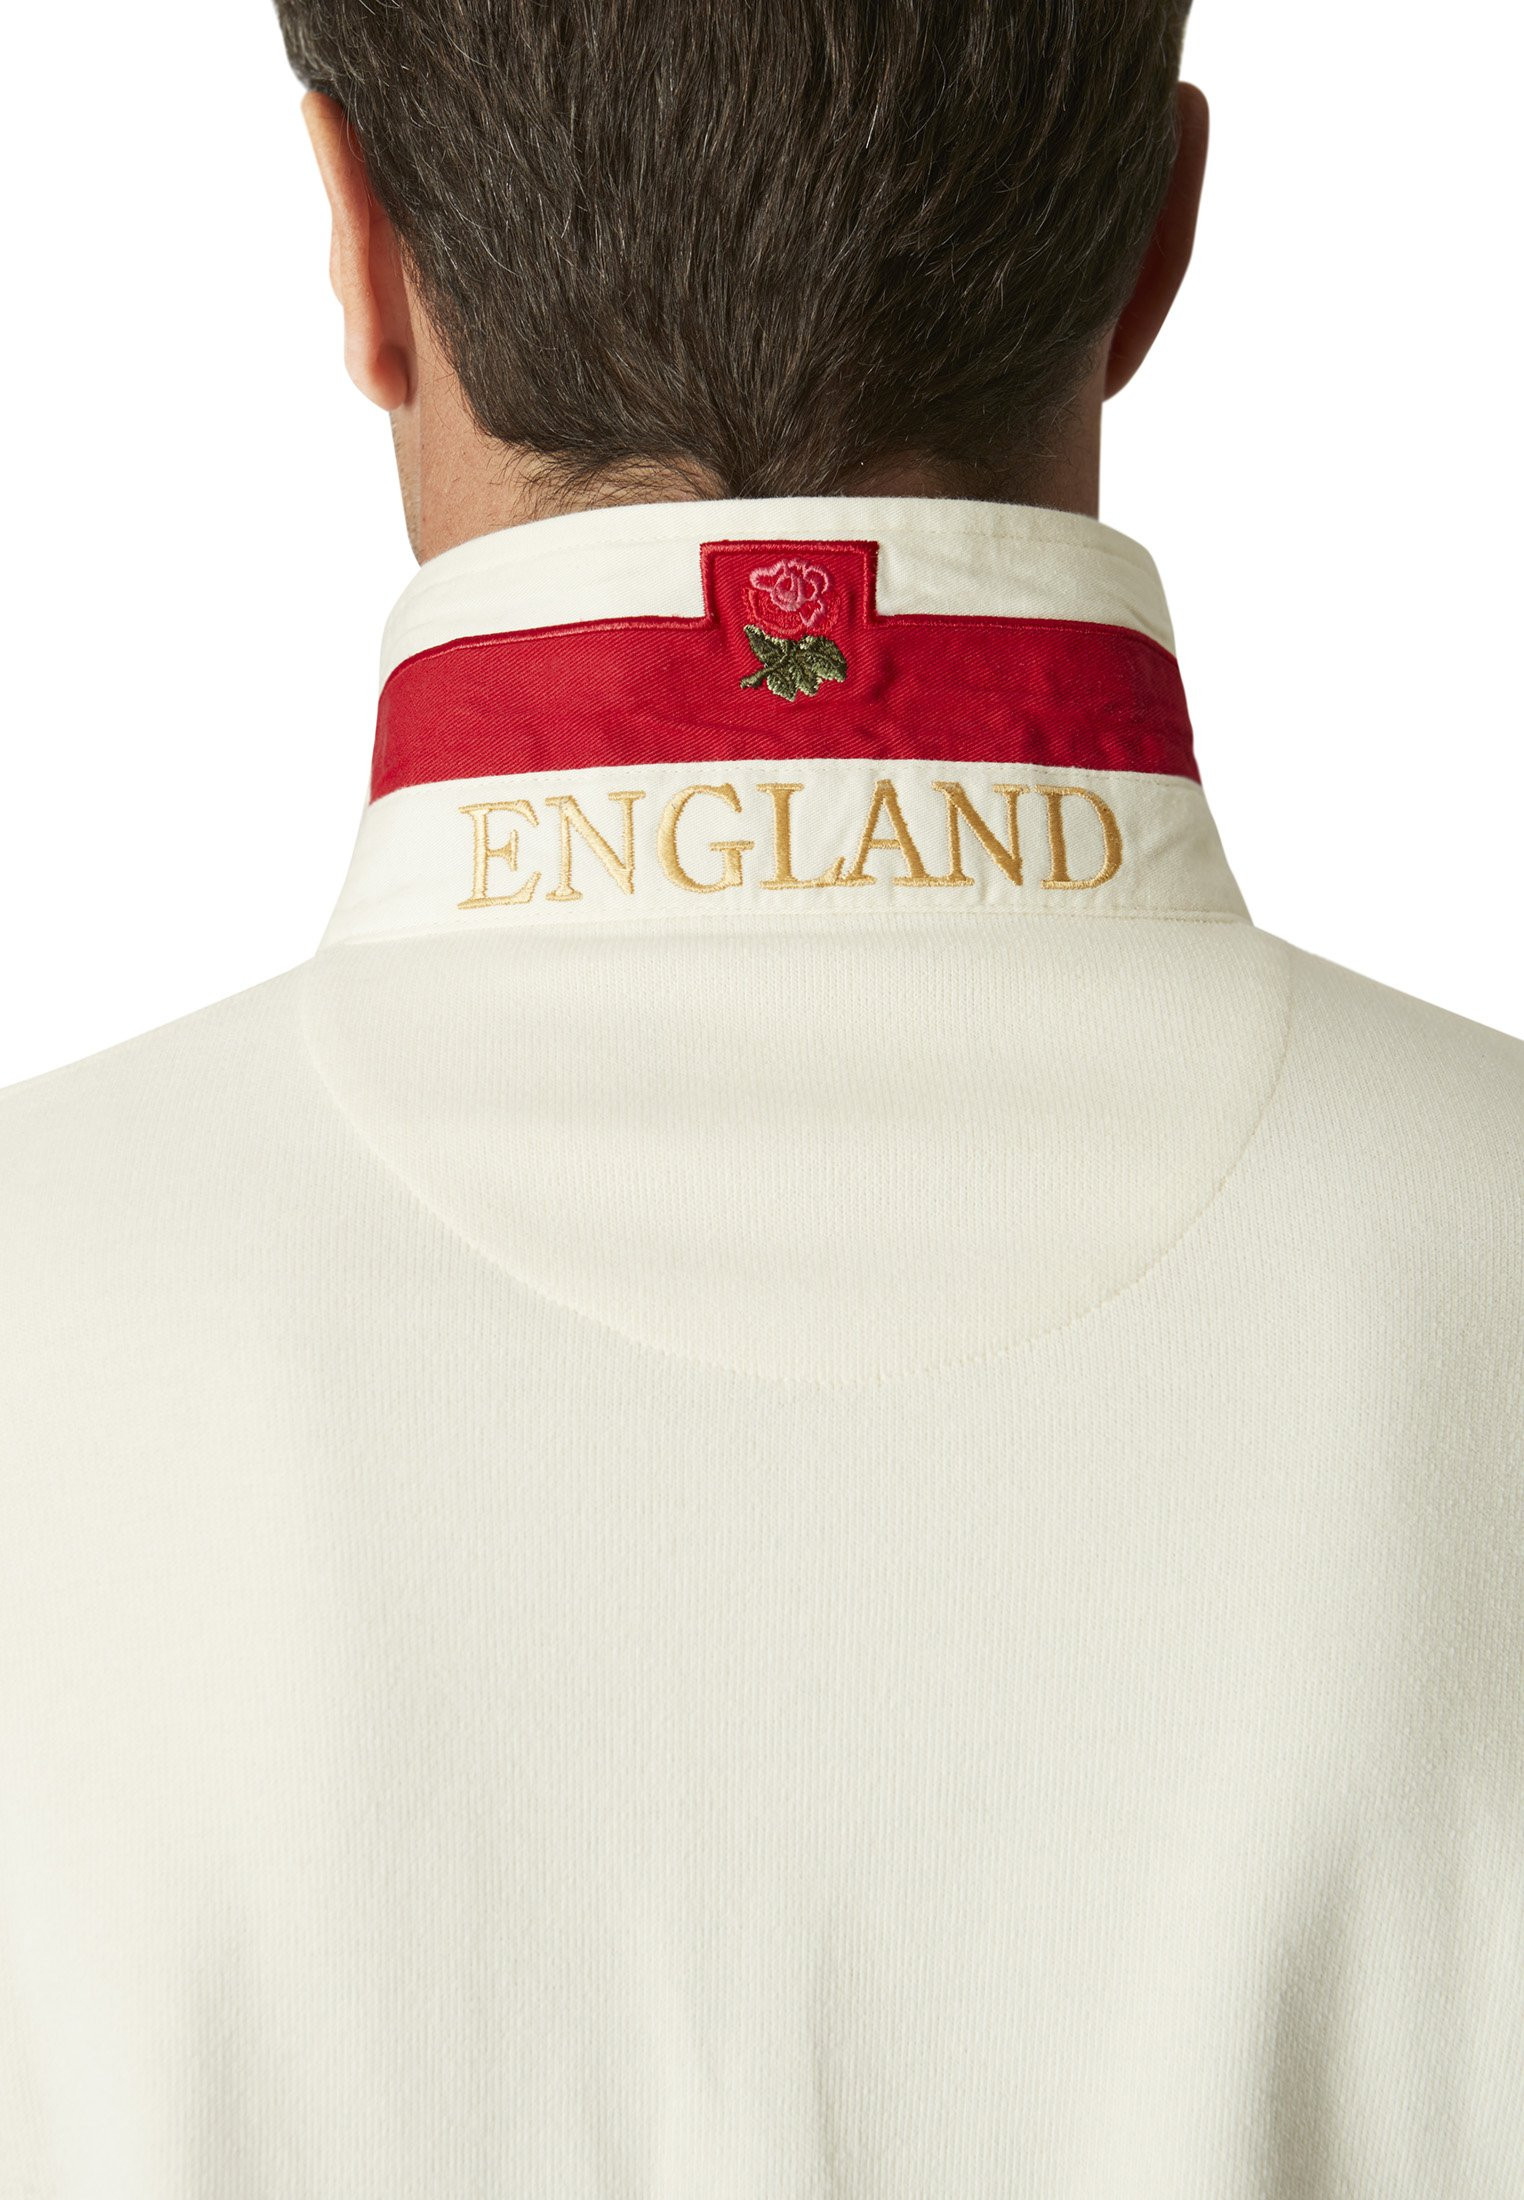 England Limited Edition Heritage Rugby Shirt